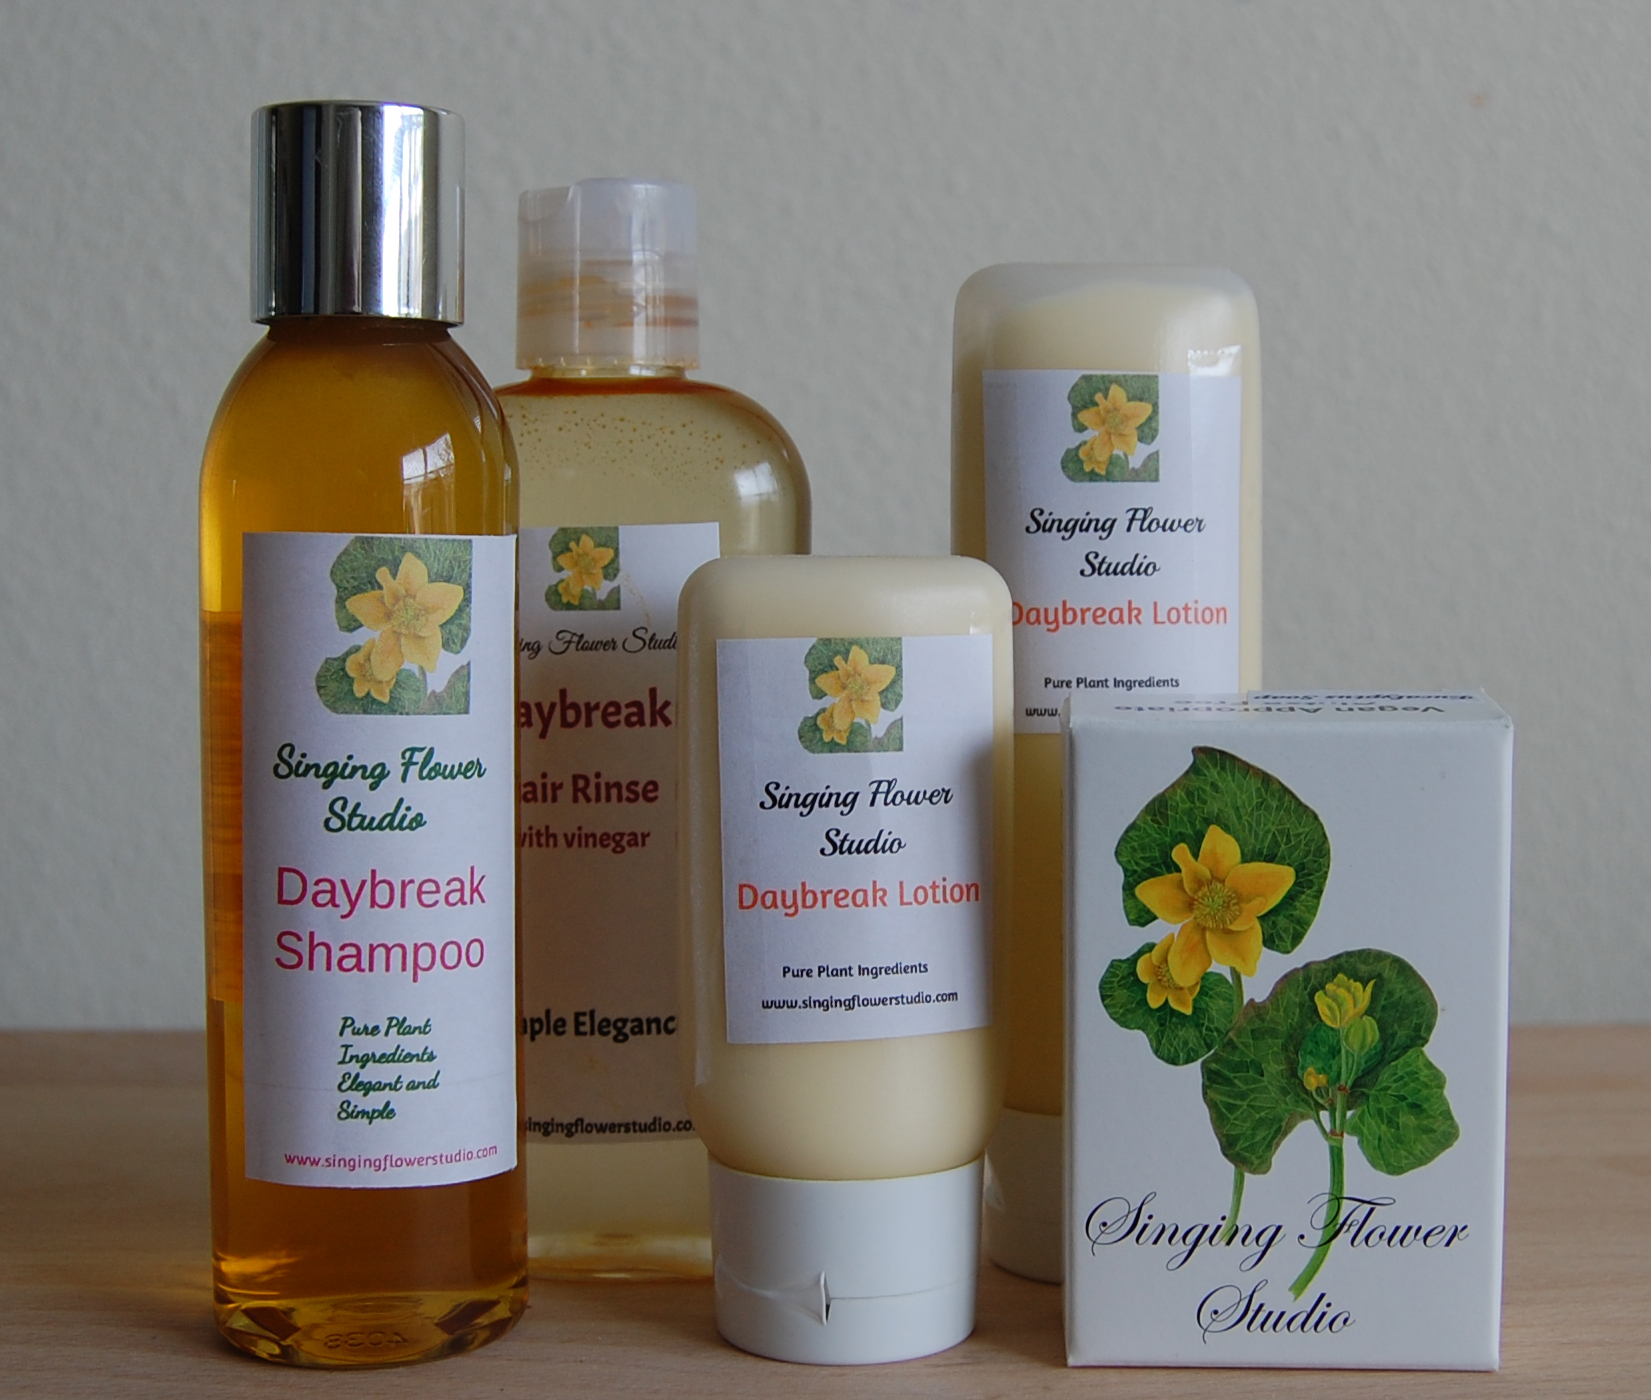 Daybreak products